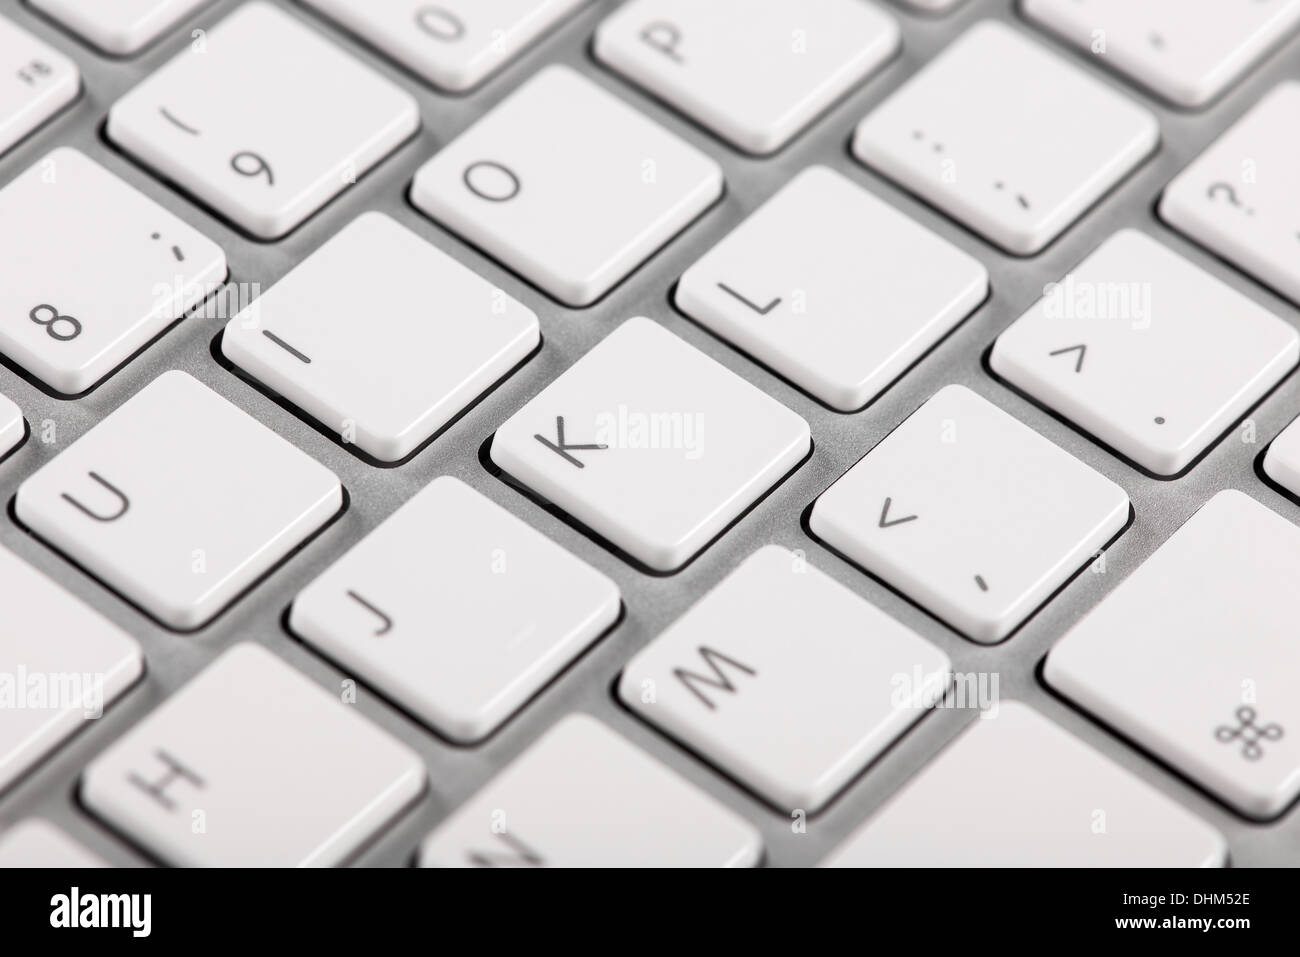 Close-up computer keyboard keys with bokeh effect - Stock Image